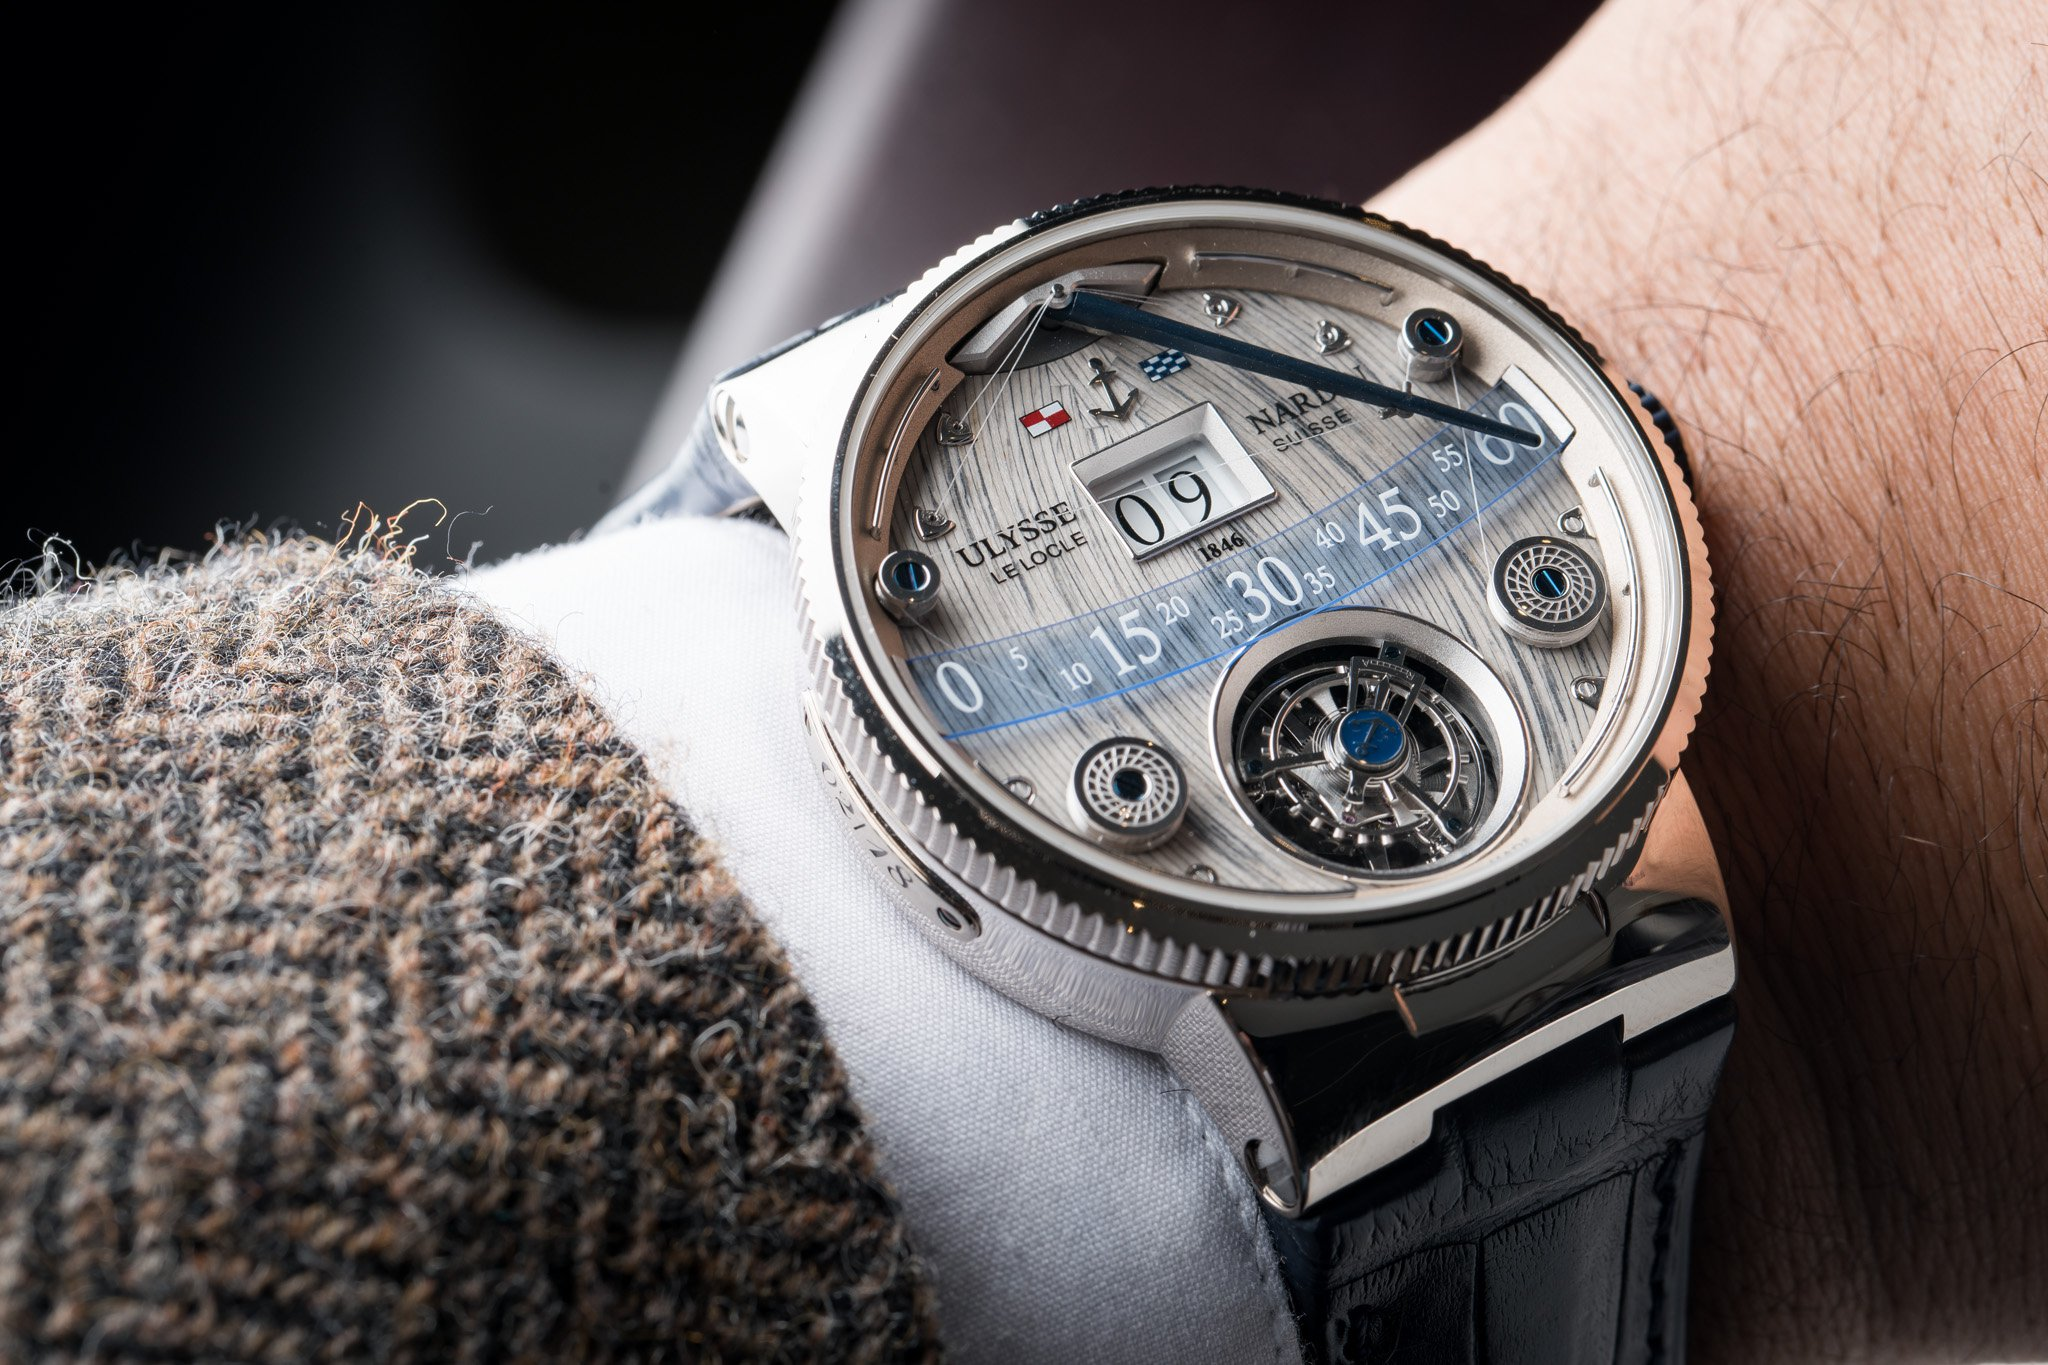 Ulysse-Nardin Grand Deck Marine Tourbillon replica